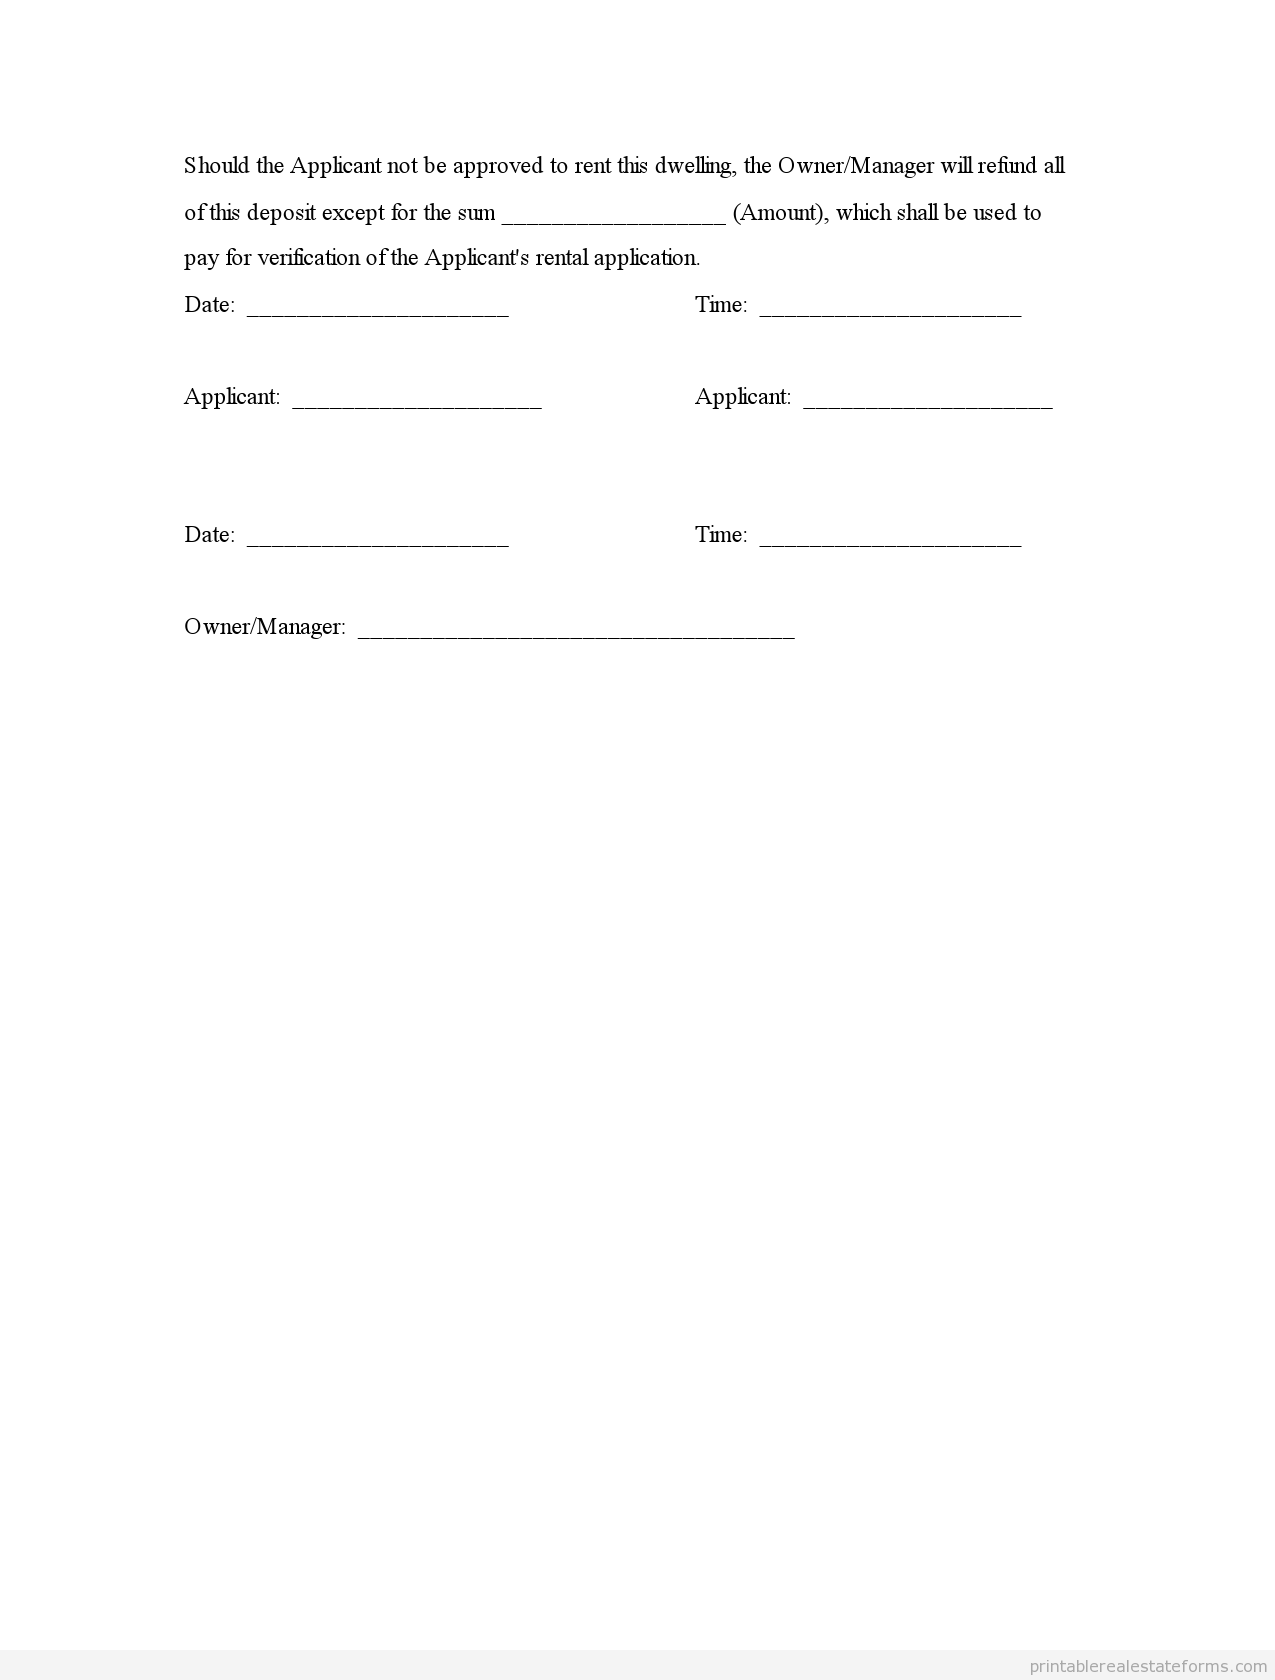 Sample Printable deposit receipt and agreement Form – Down Payment Receipt Form